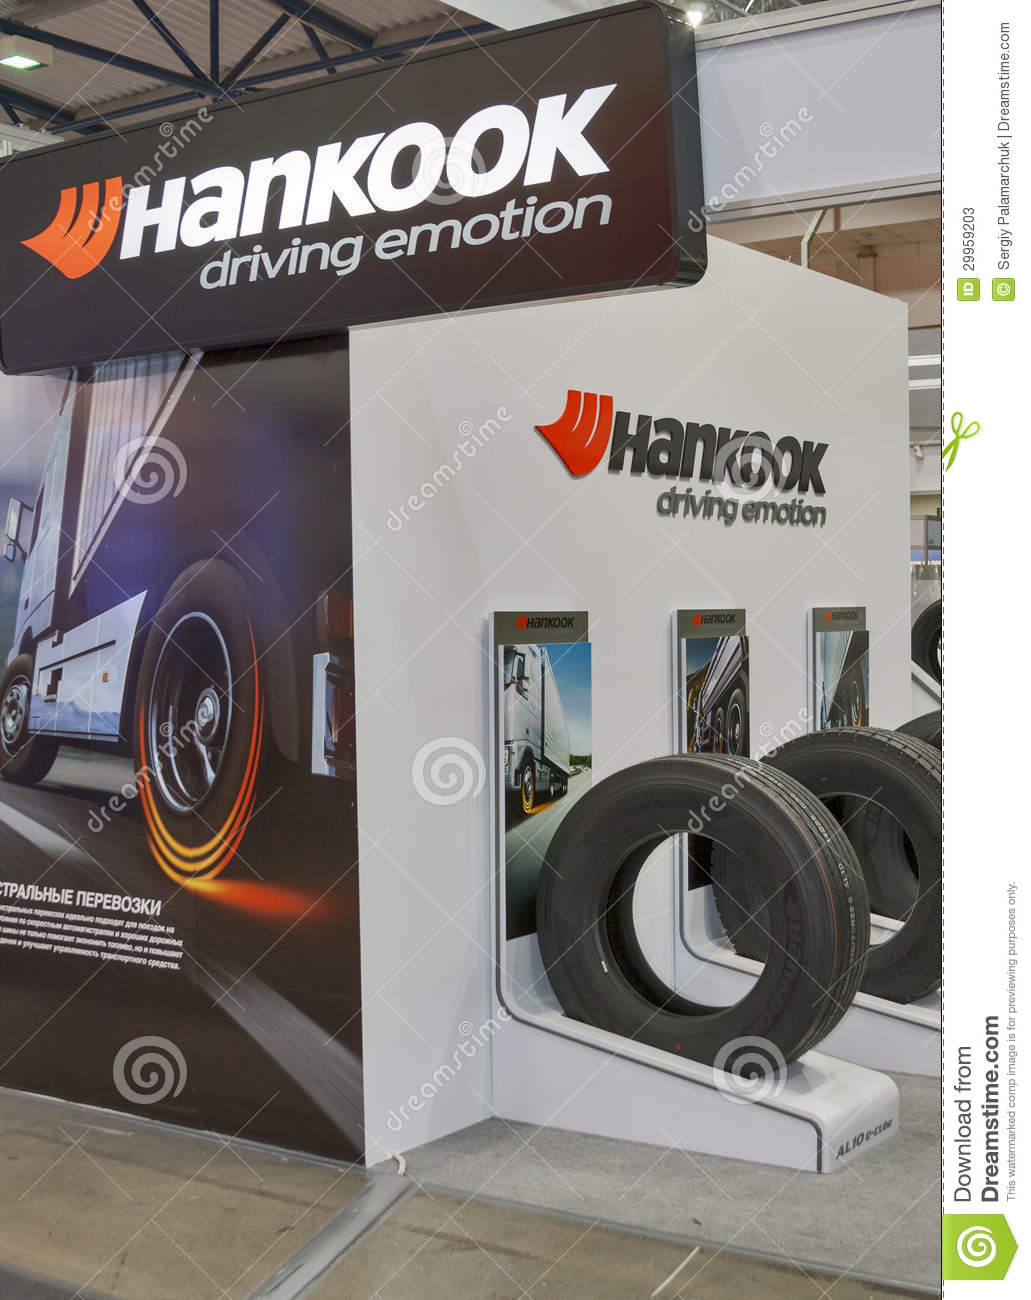 Exhibition Booth Sia : Hankook tires booth editorial stock photo image of exhibition